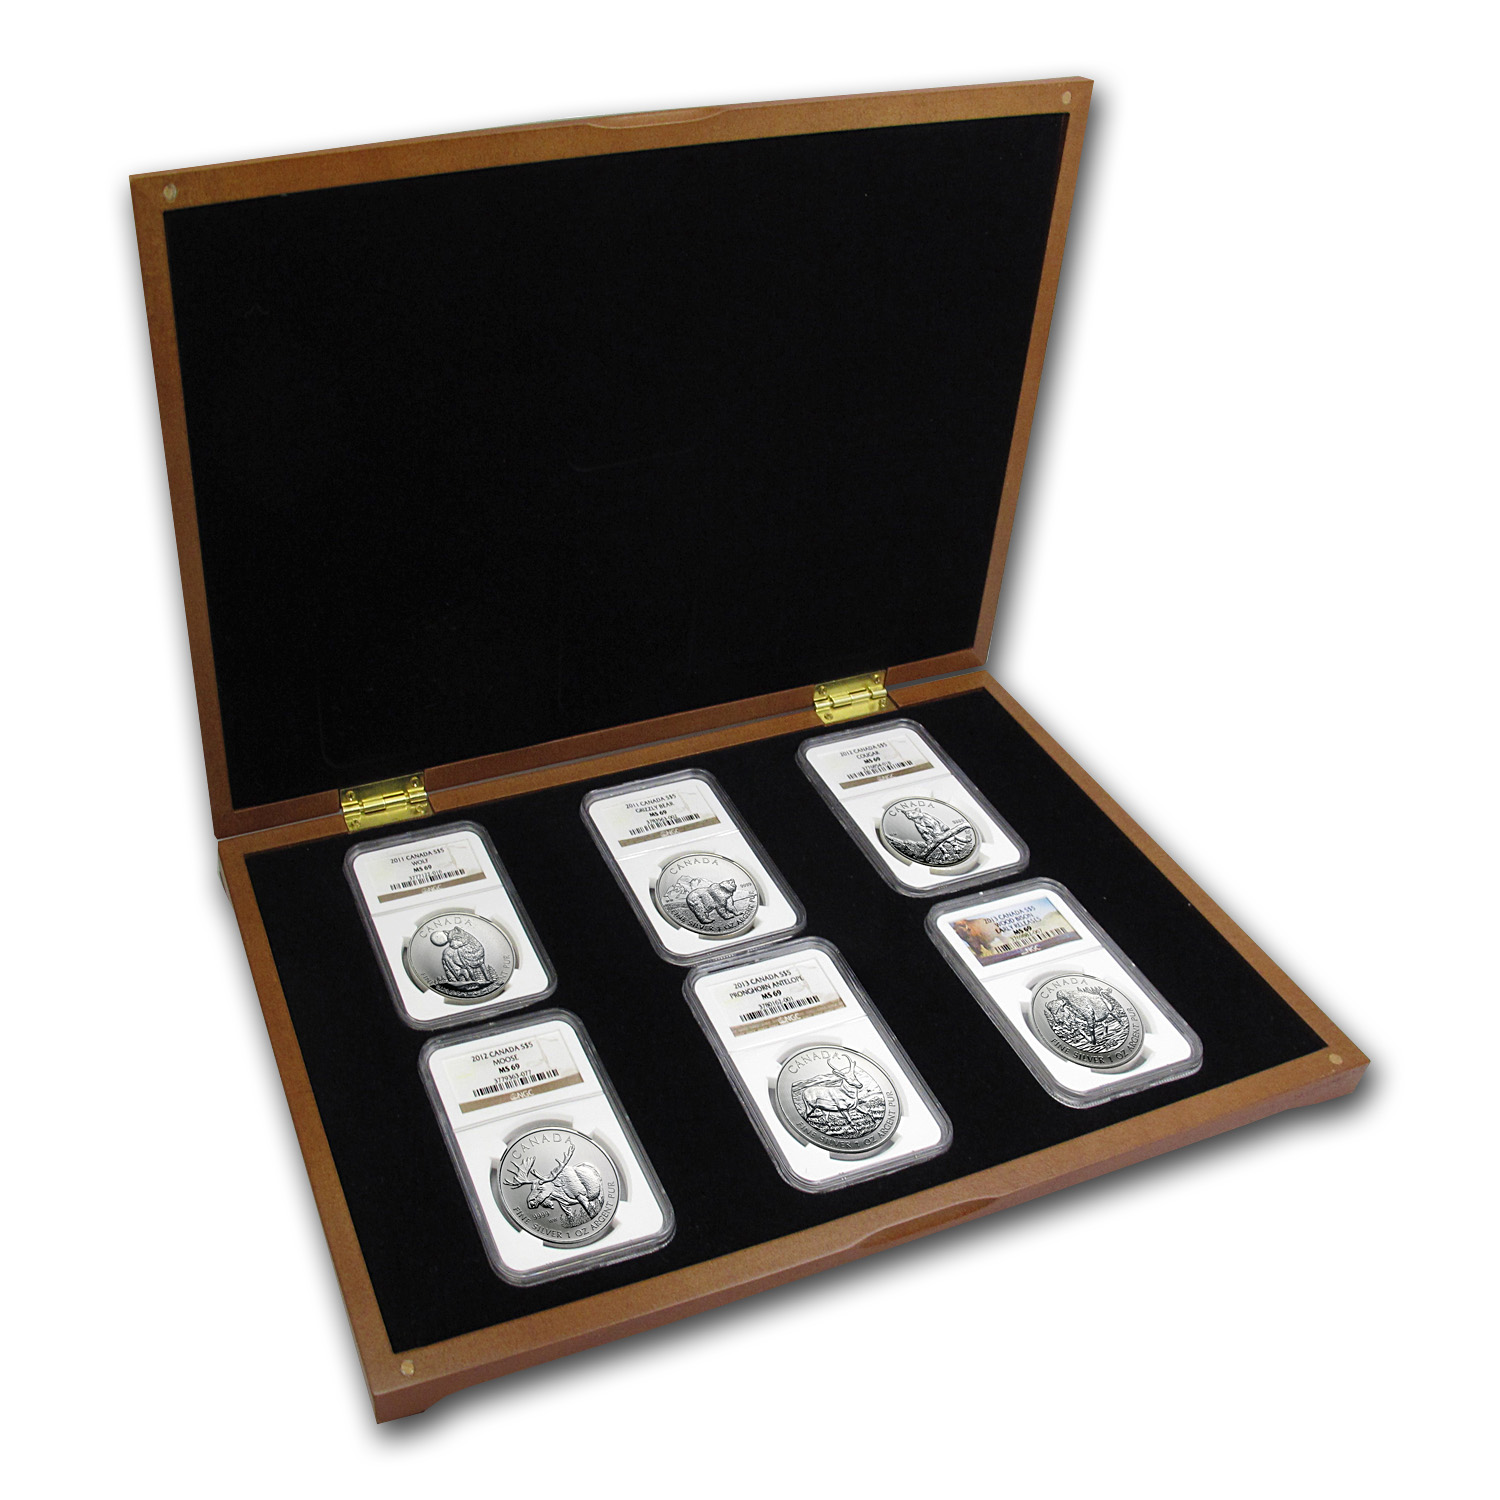 Canadian Wildlife Series-Complete 6 Coin Set - All MS-69 NGC